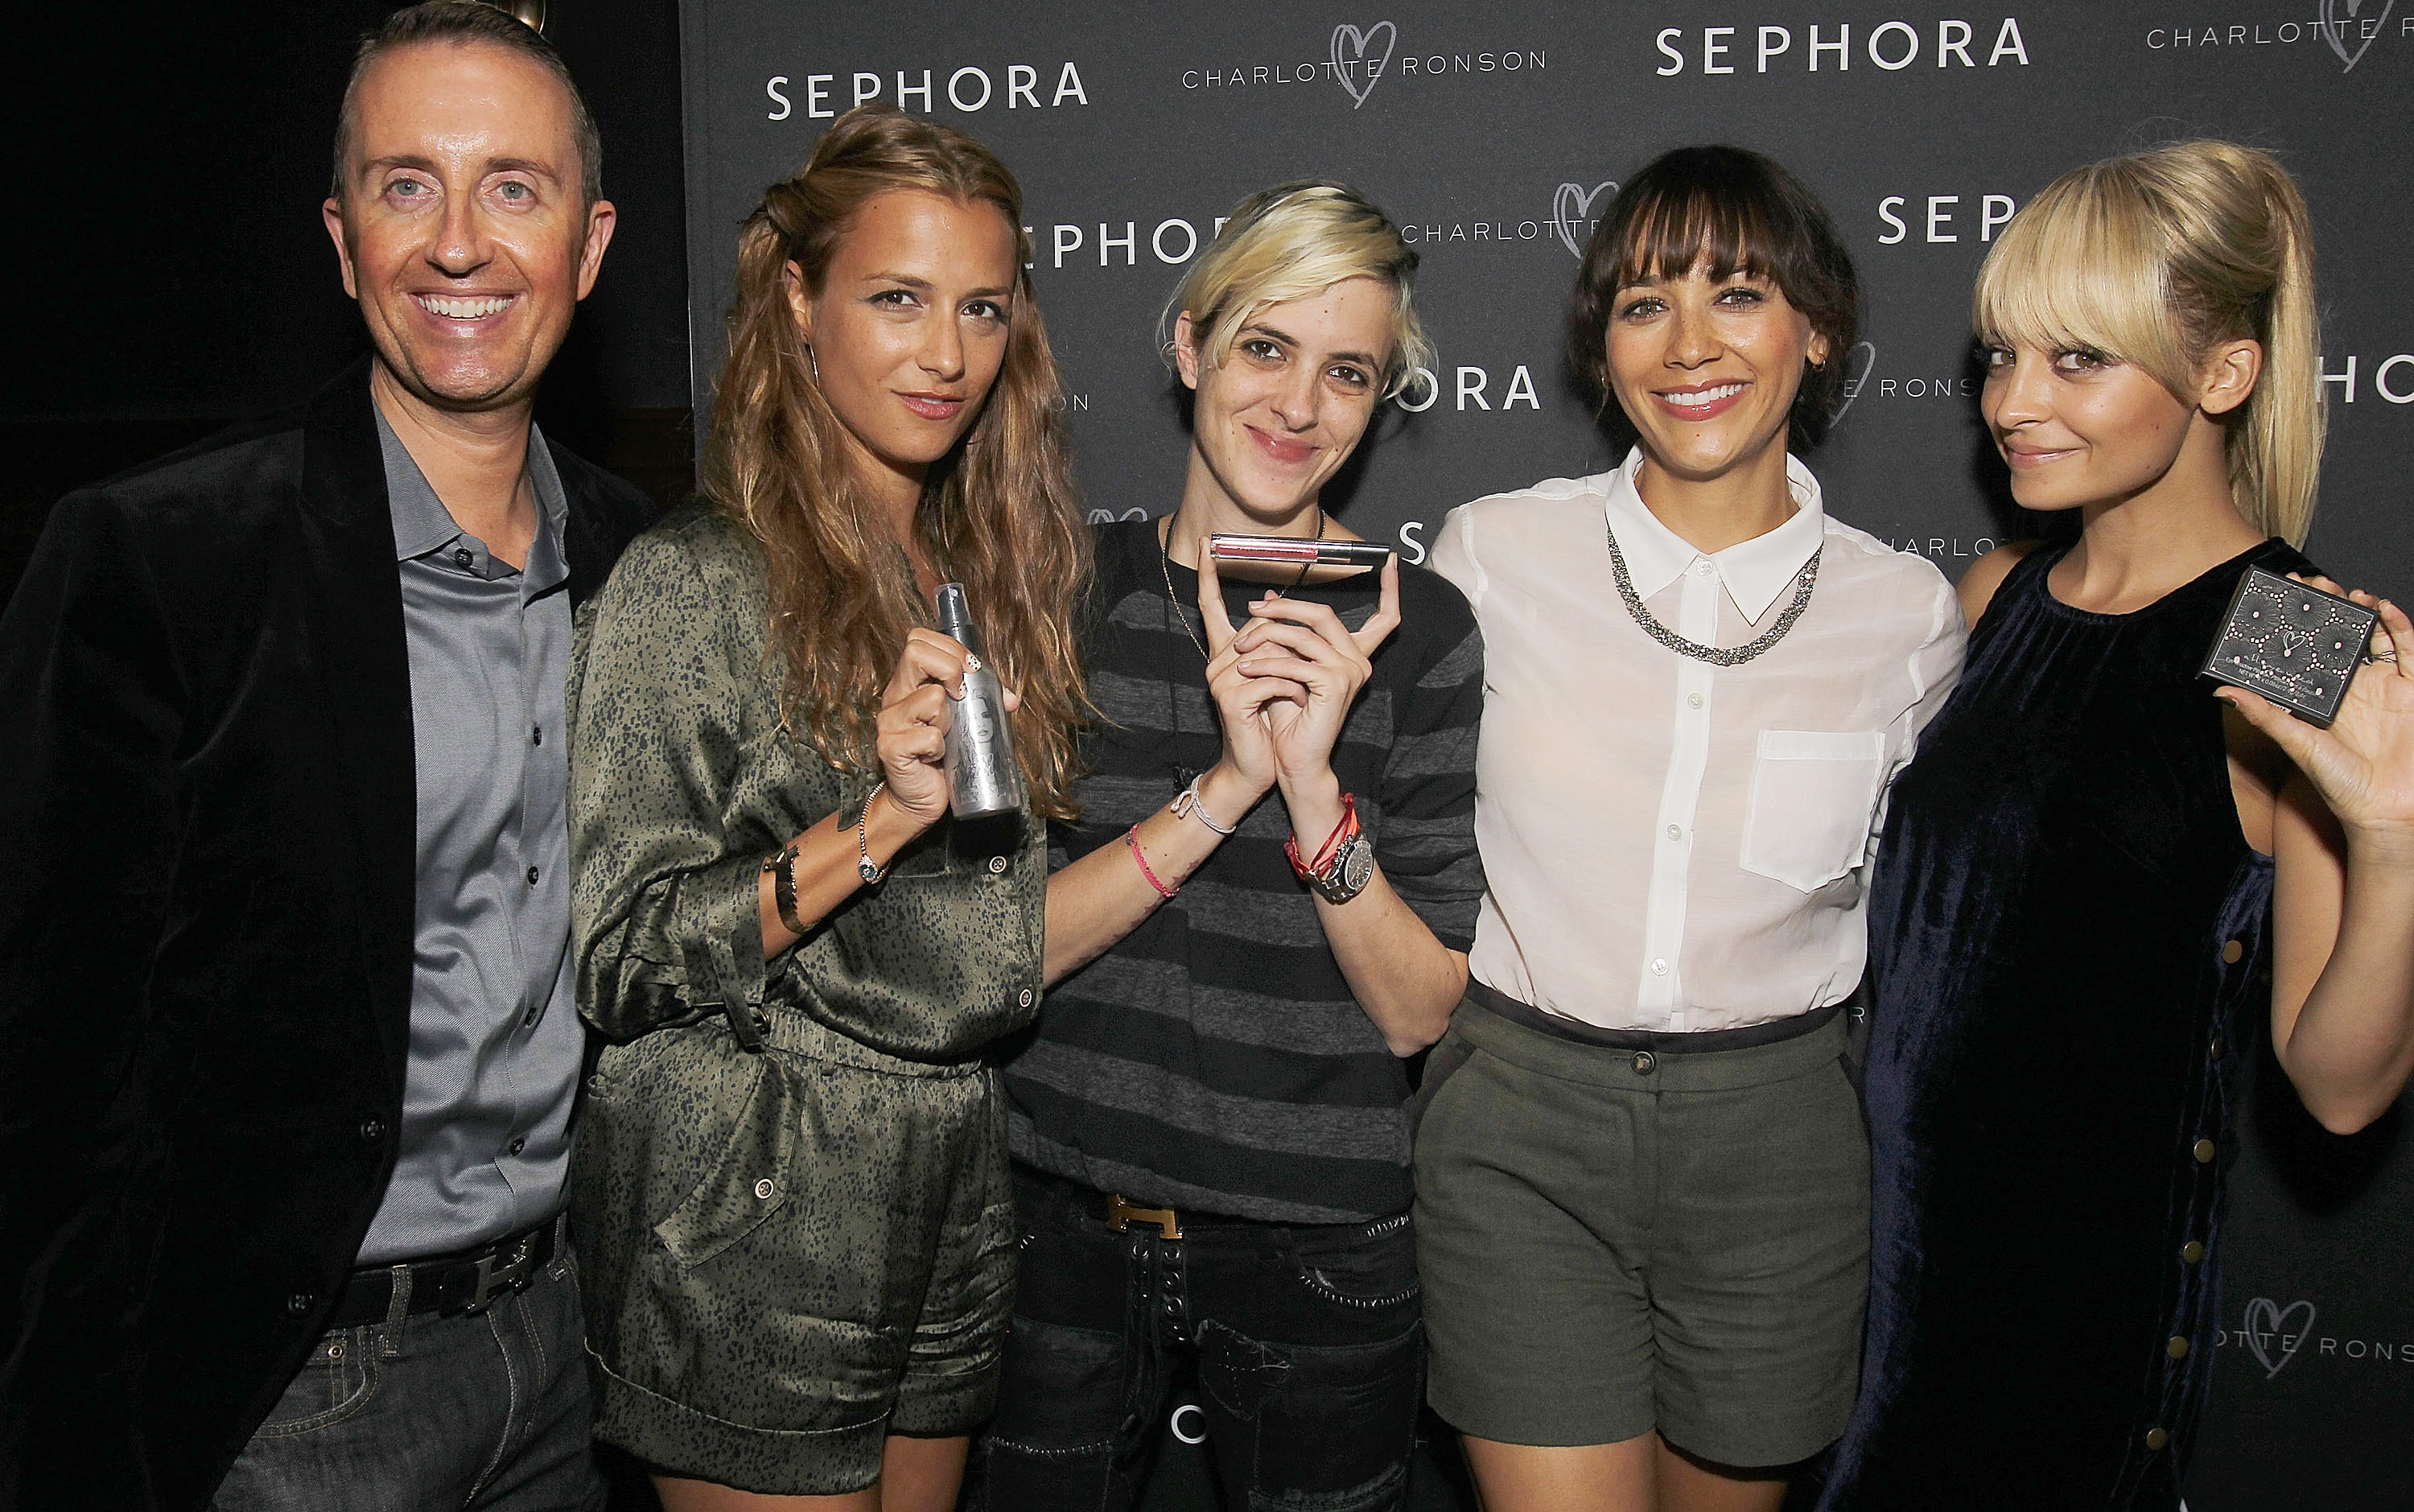 The girls all held up the Charlotte Ronson Beauty products.